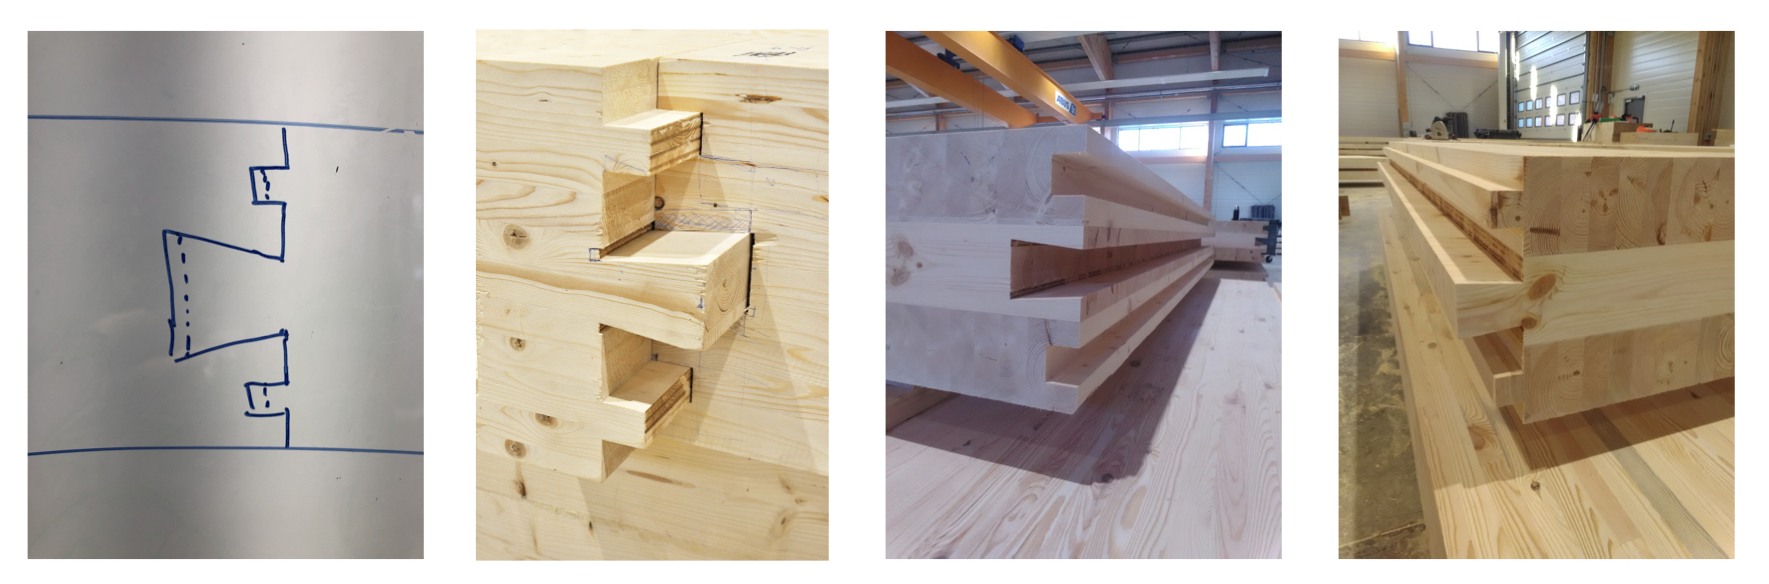 From idea to CNC-manufactured dovetail joint for glulam panels assembly ZAZA TIMBER